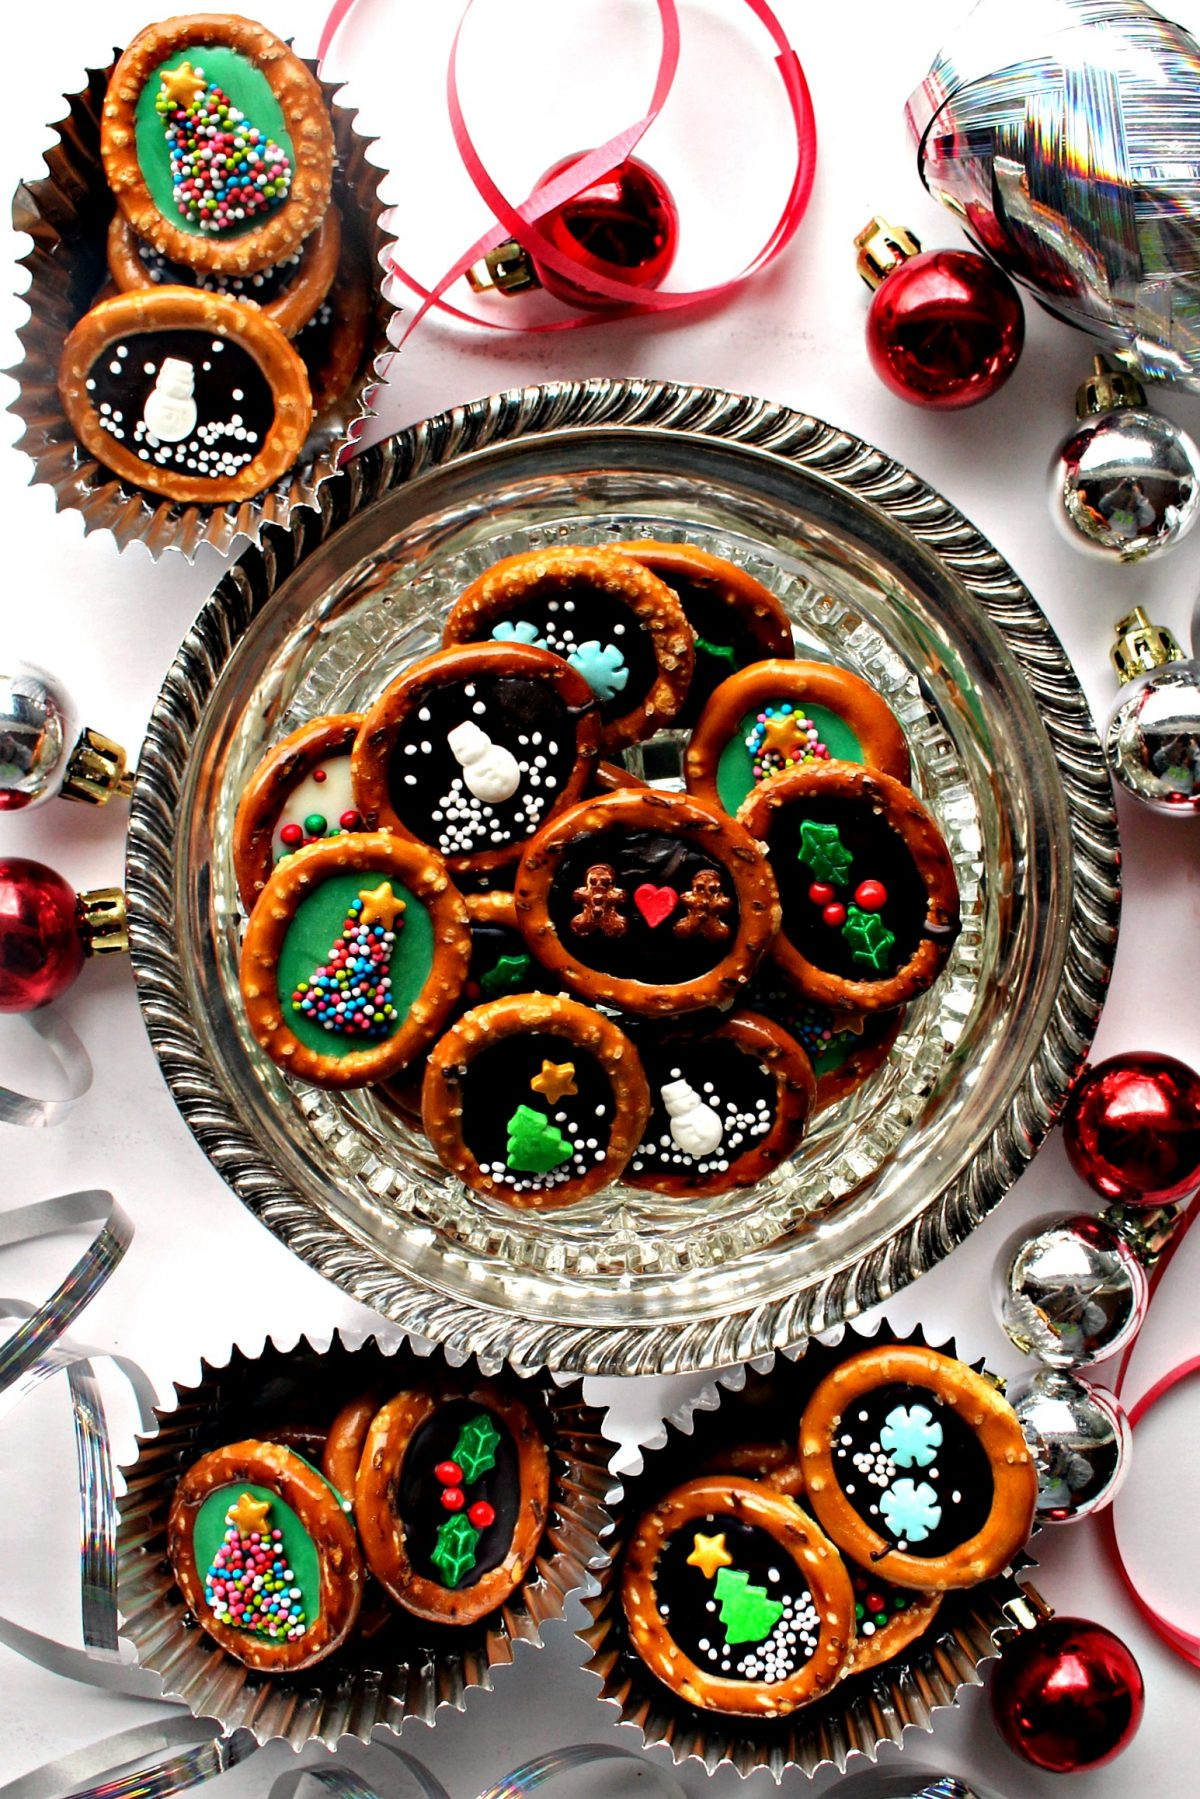 Pretzel rings with chocolate centers and sprinkle designs on a silver tray.